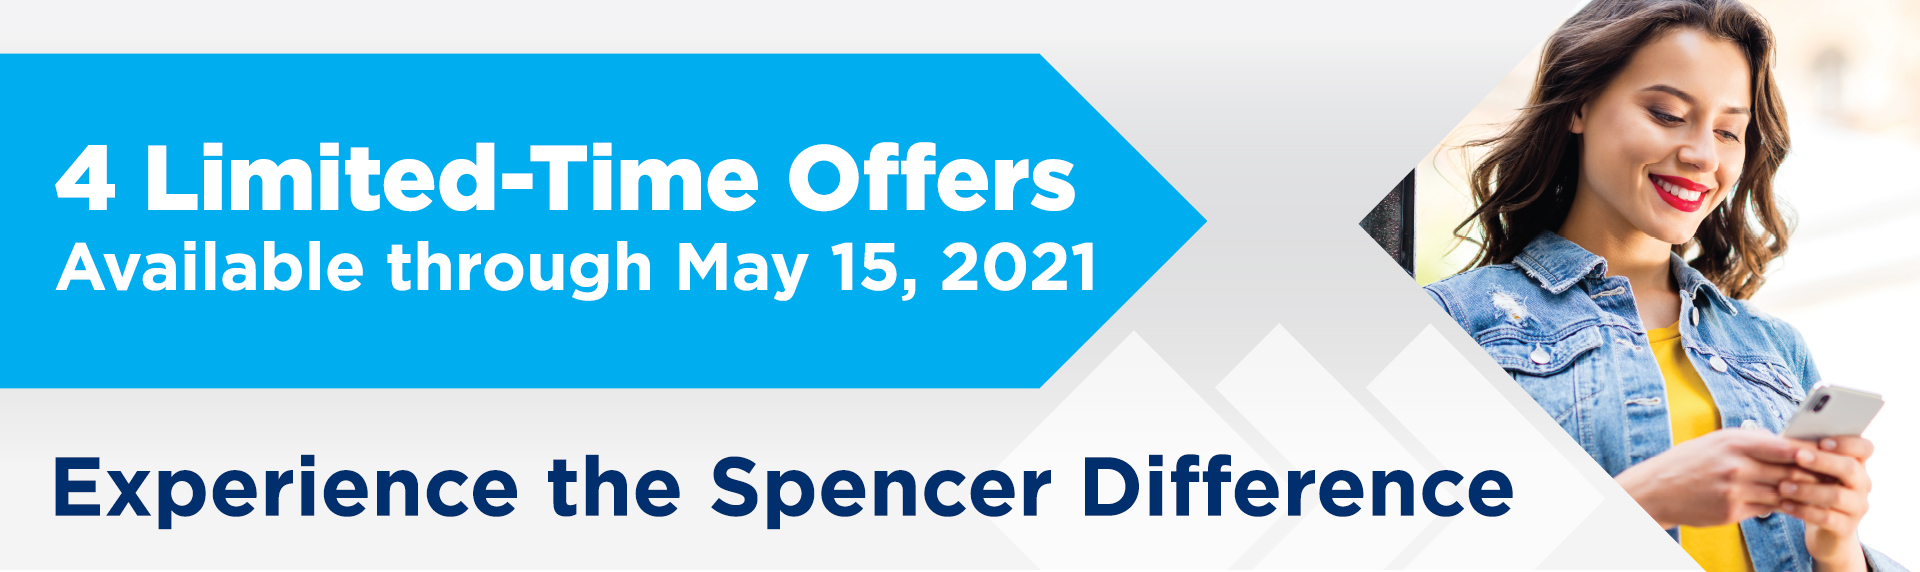 Experience the Spencer Difference